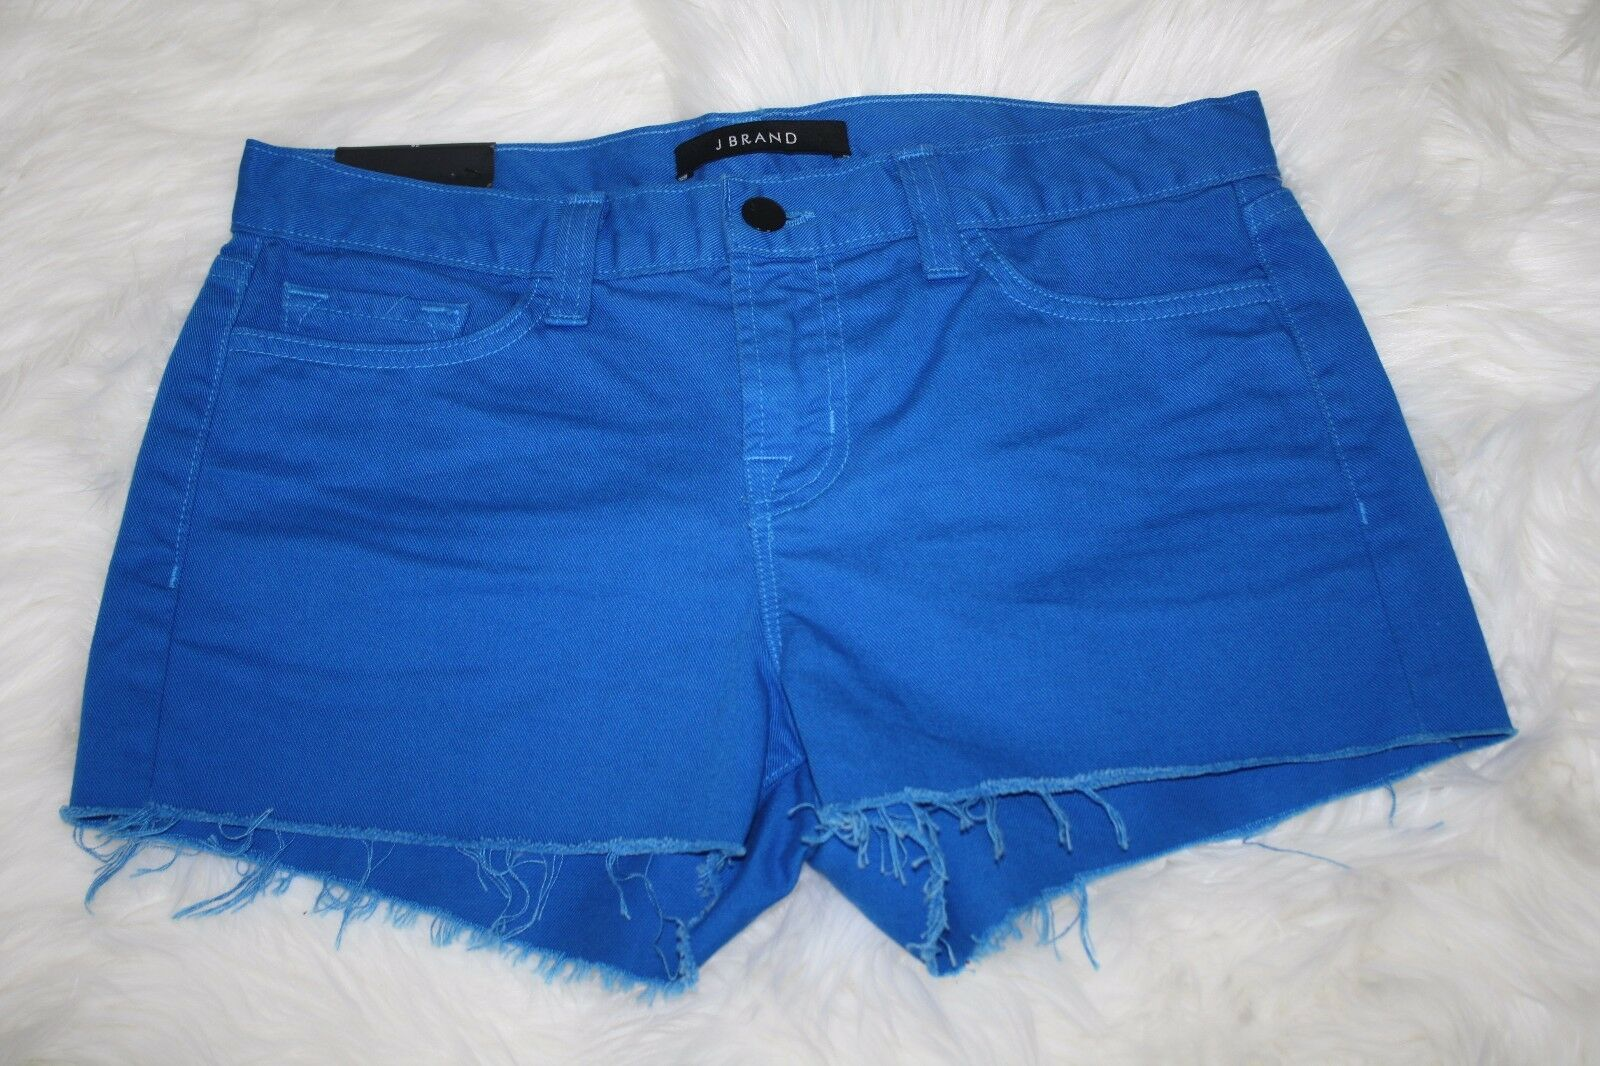 J Brand Womens Breakwater bluee Cotton Denim Jeans Low Rise Cut Off Shorts Sz 26